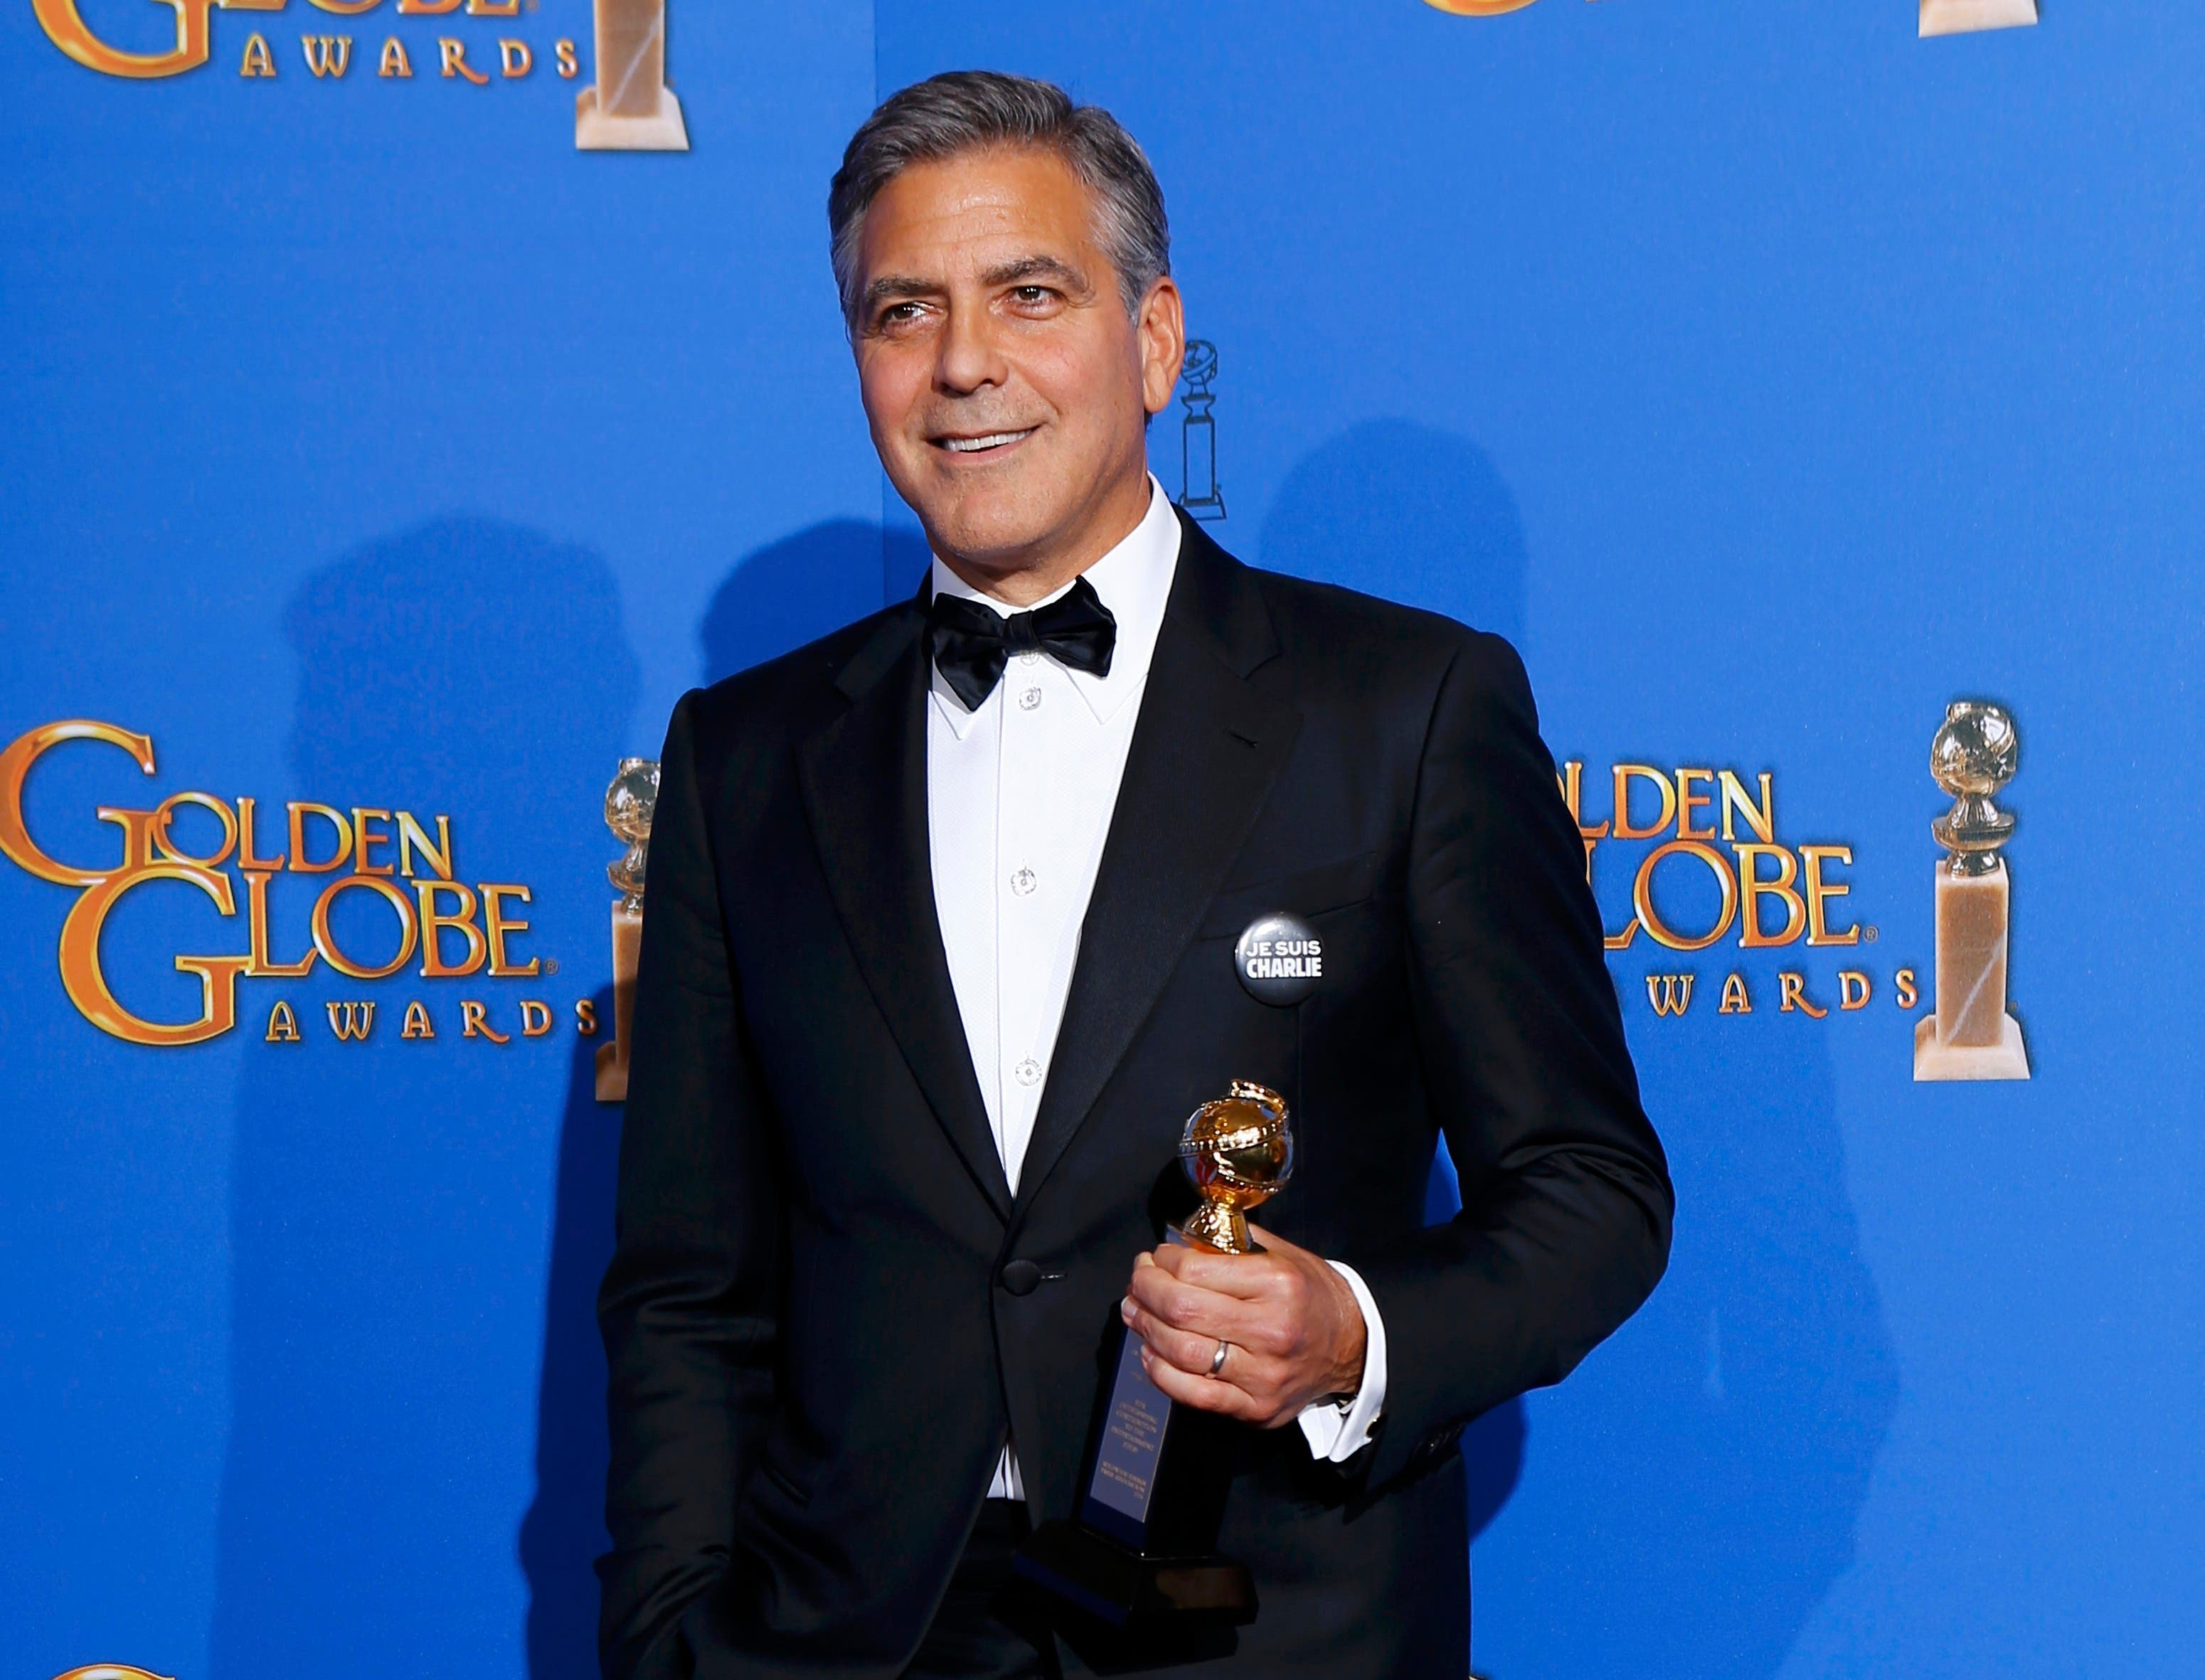 Honoree actor George Clooney poses with the Cecille B. DeMille award backstage at the 72nd Golden Globe Awards in Beverly Hills, California January 11, 2015. (Reuters)